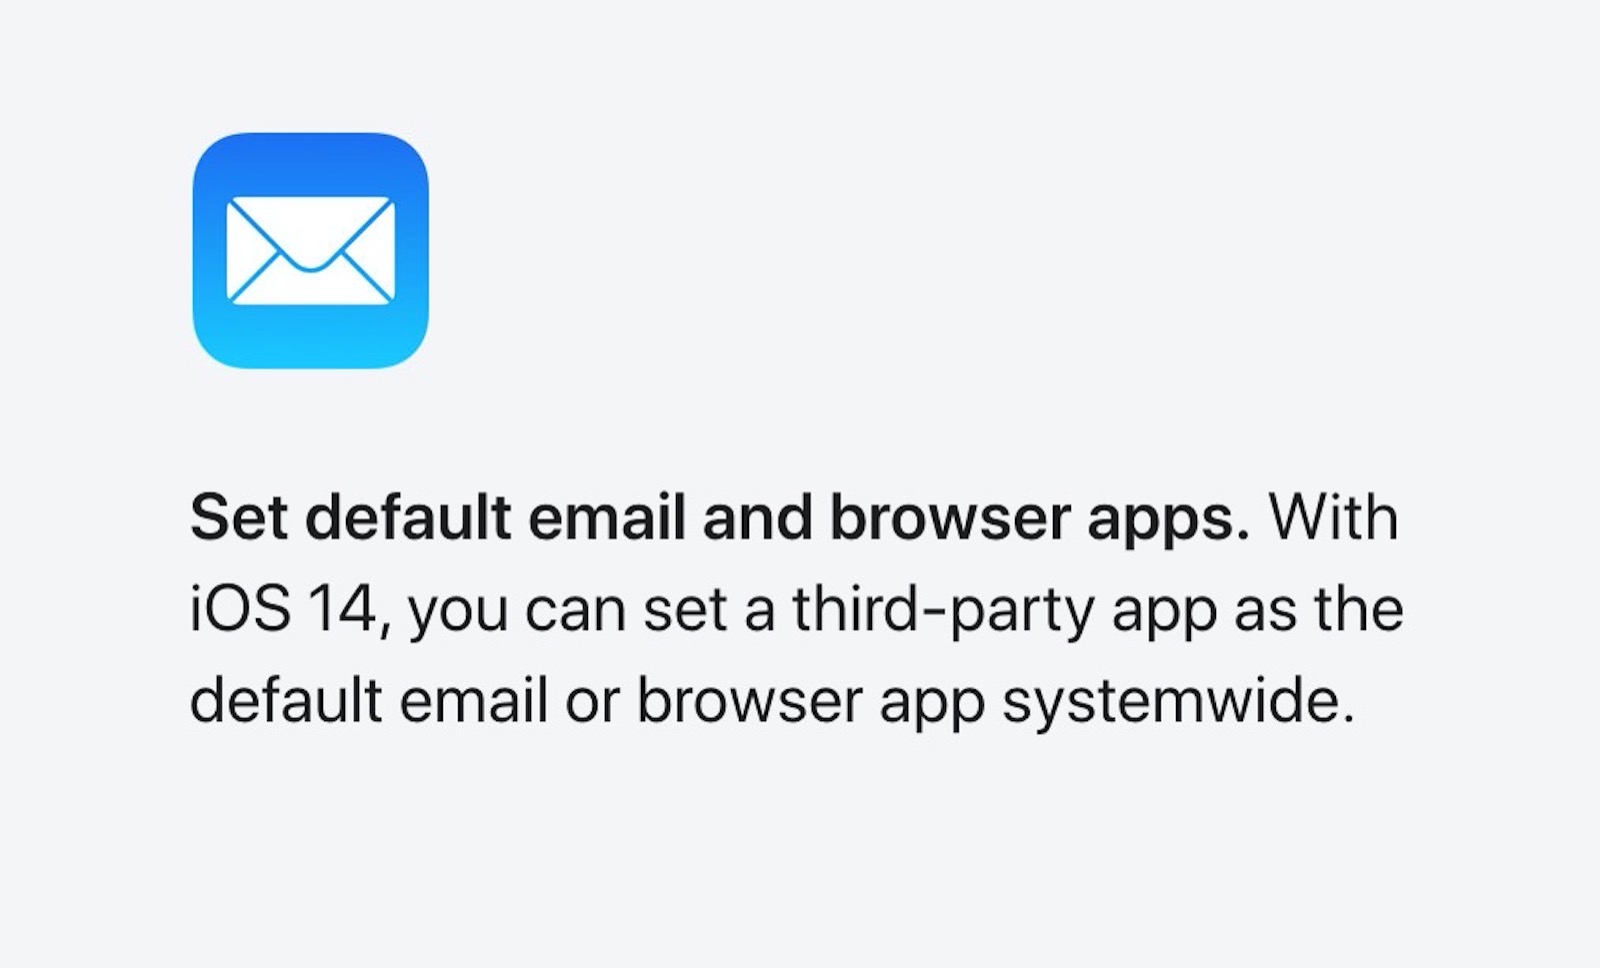 Default apps for mail and browser